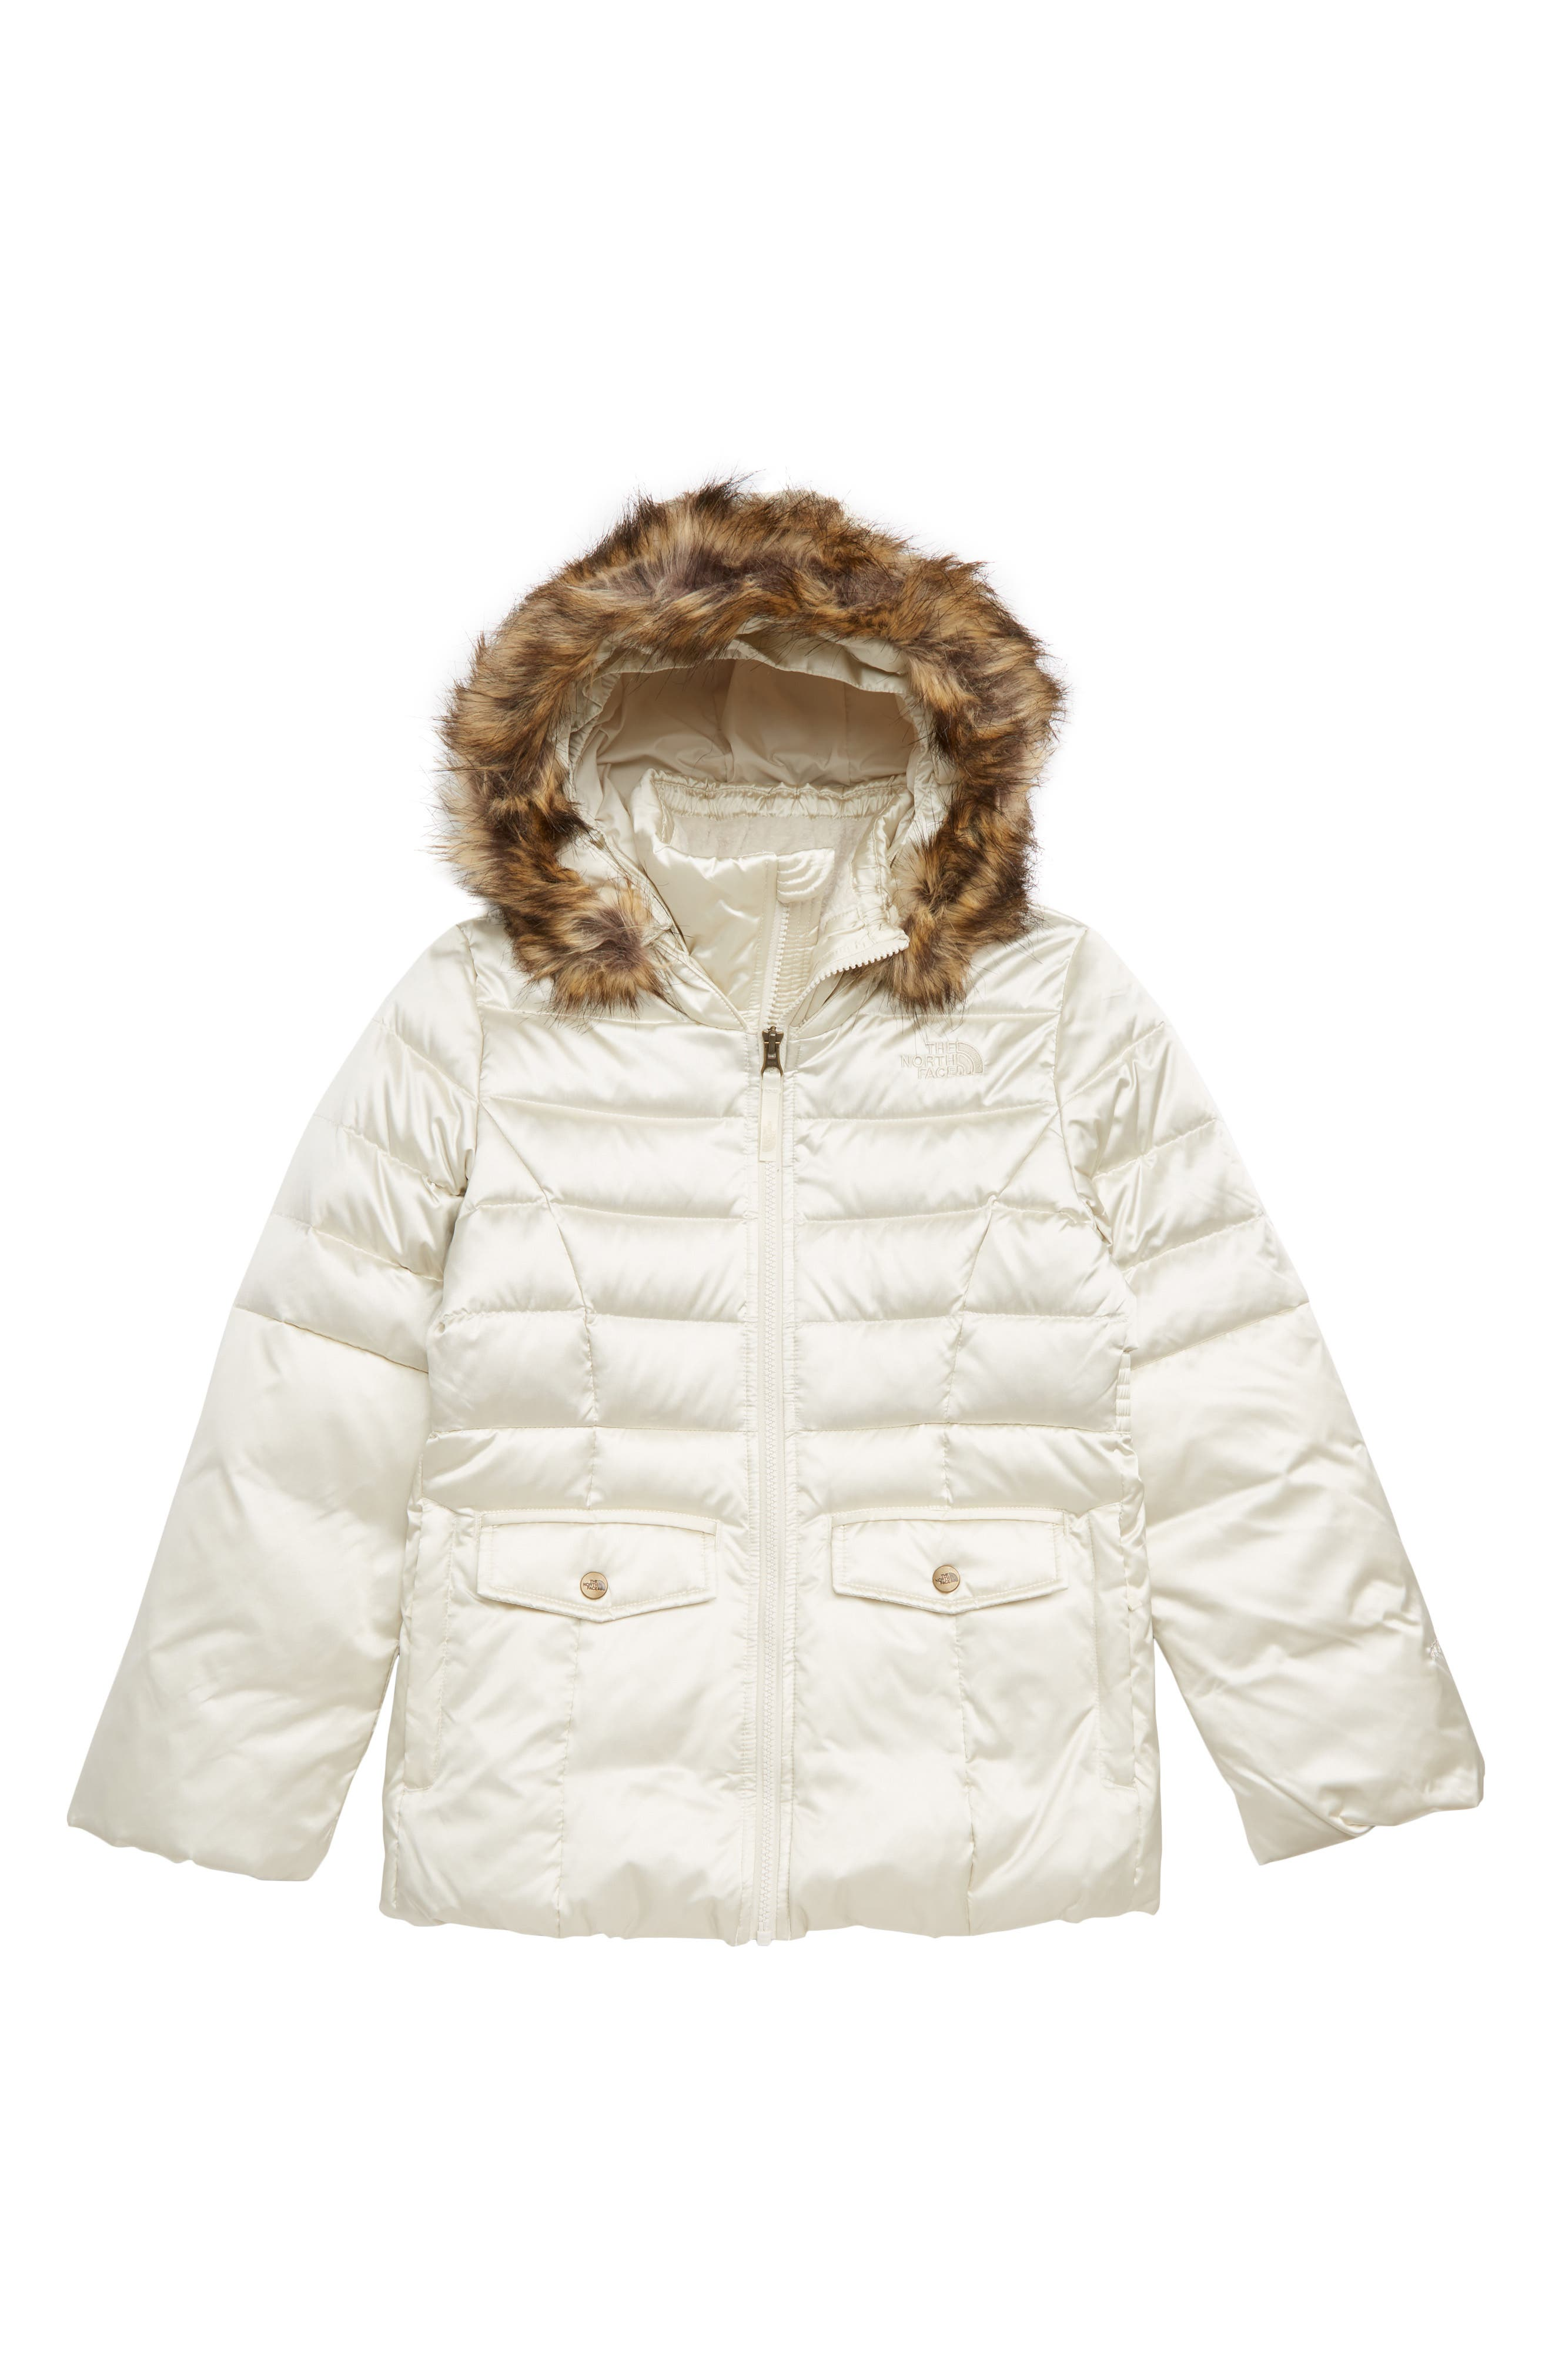 Gotham 2.0 Water Resistant 550-Fill-Power Down Jacket with Faux Fur Trim,                             Main thumbnail 1, color,                             VINTAGE WHITE